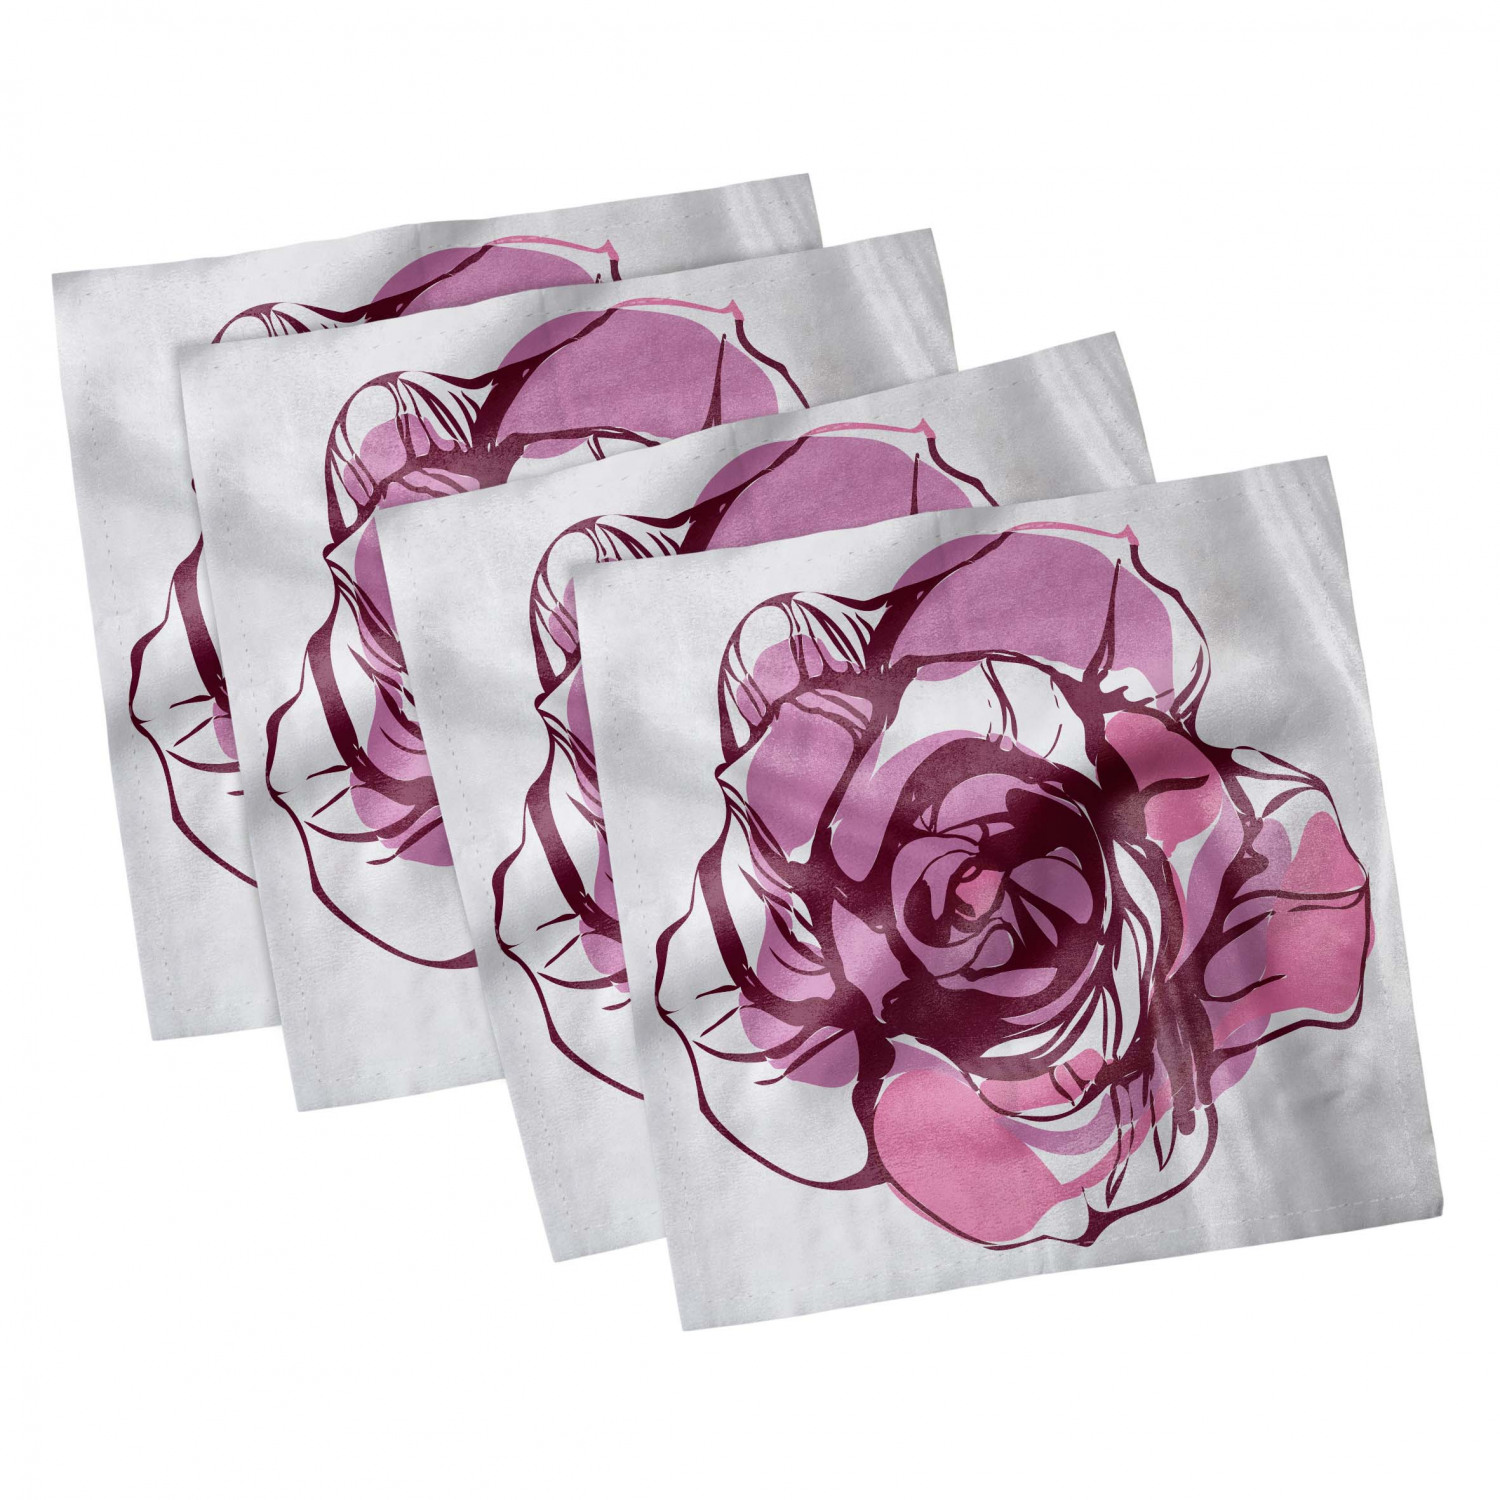 thumbnail 99 - Ambesonne-Leaves-Forest-Decorative-Satin-Napkins-Set-of-4-Party-Dinner-Fabric